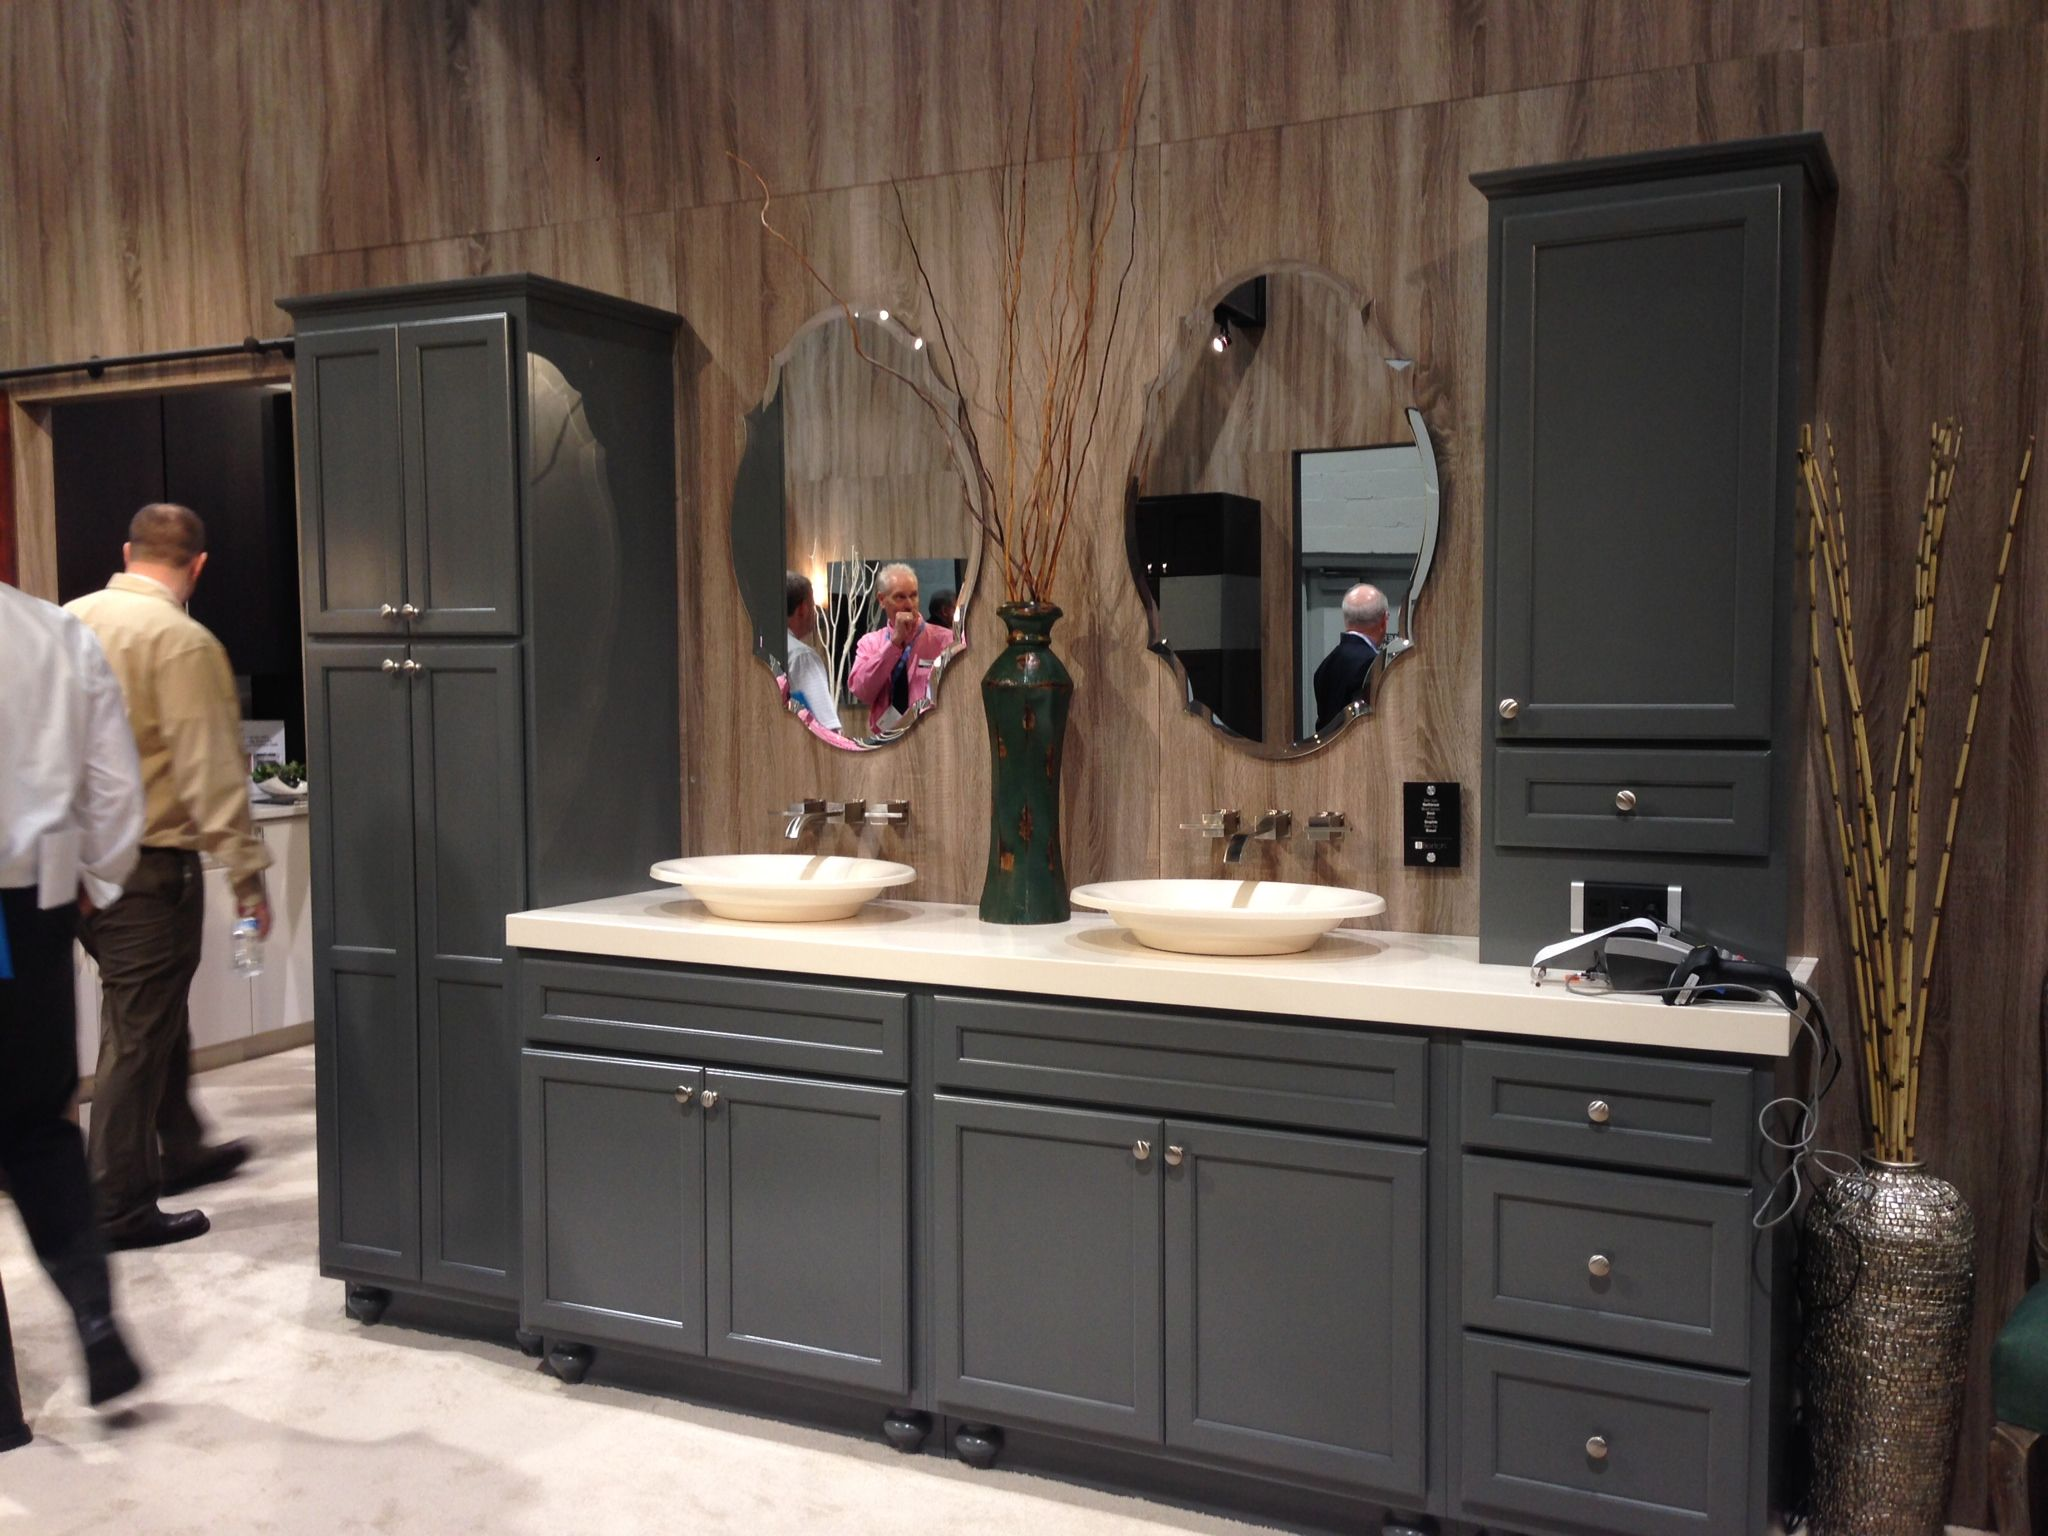 project wood vanity the bath bertch make can kitchen comes giving your cabinets it shale difference remodeling are bathroom bathrooms vanities interlude appearance distinct all s a right luxurious when mckenna to